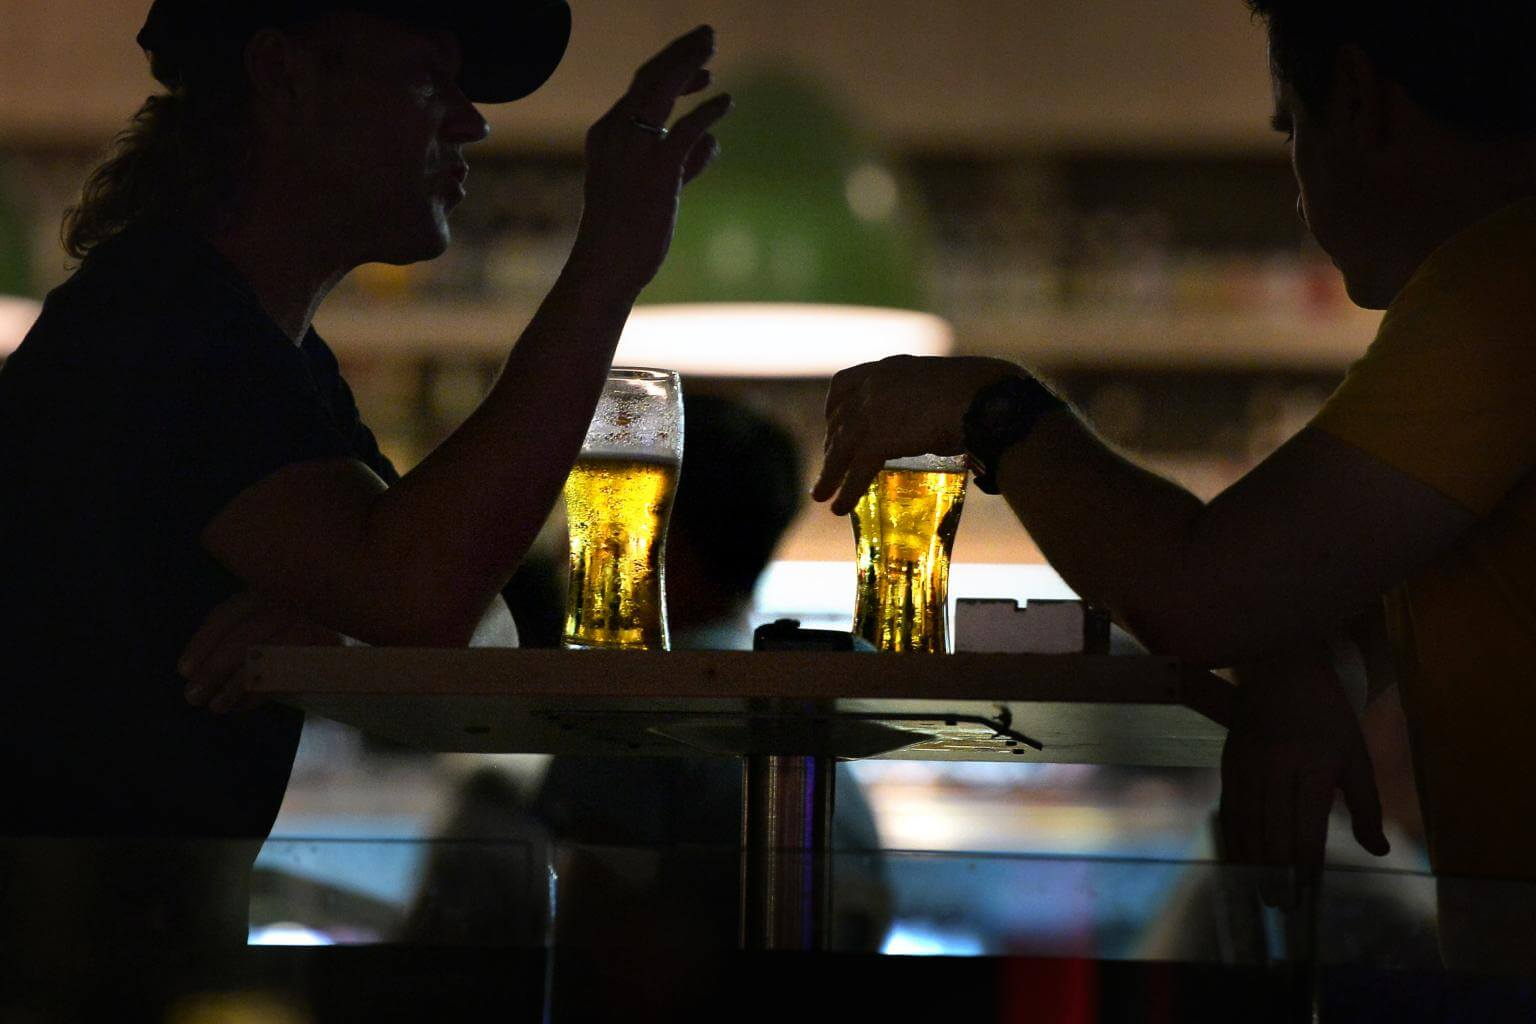 Why Are There So Many More Expats Than Singaporeans In Alcoholics Anonymous?